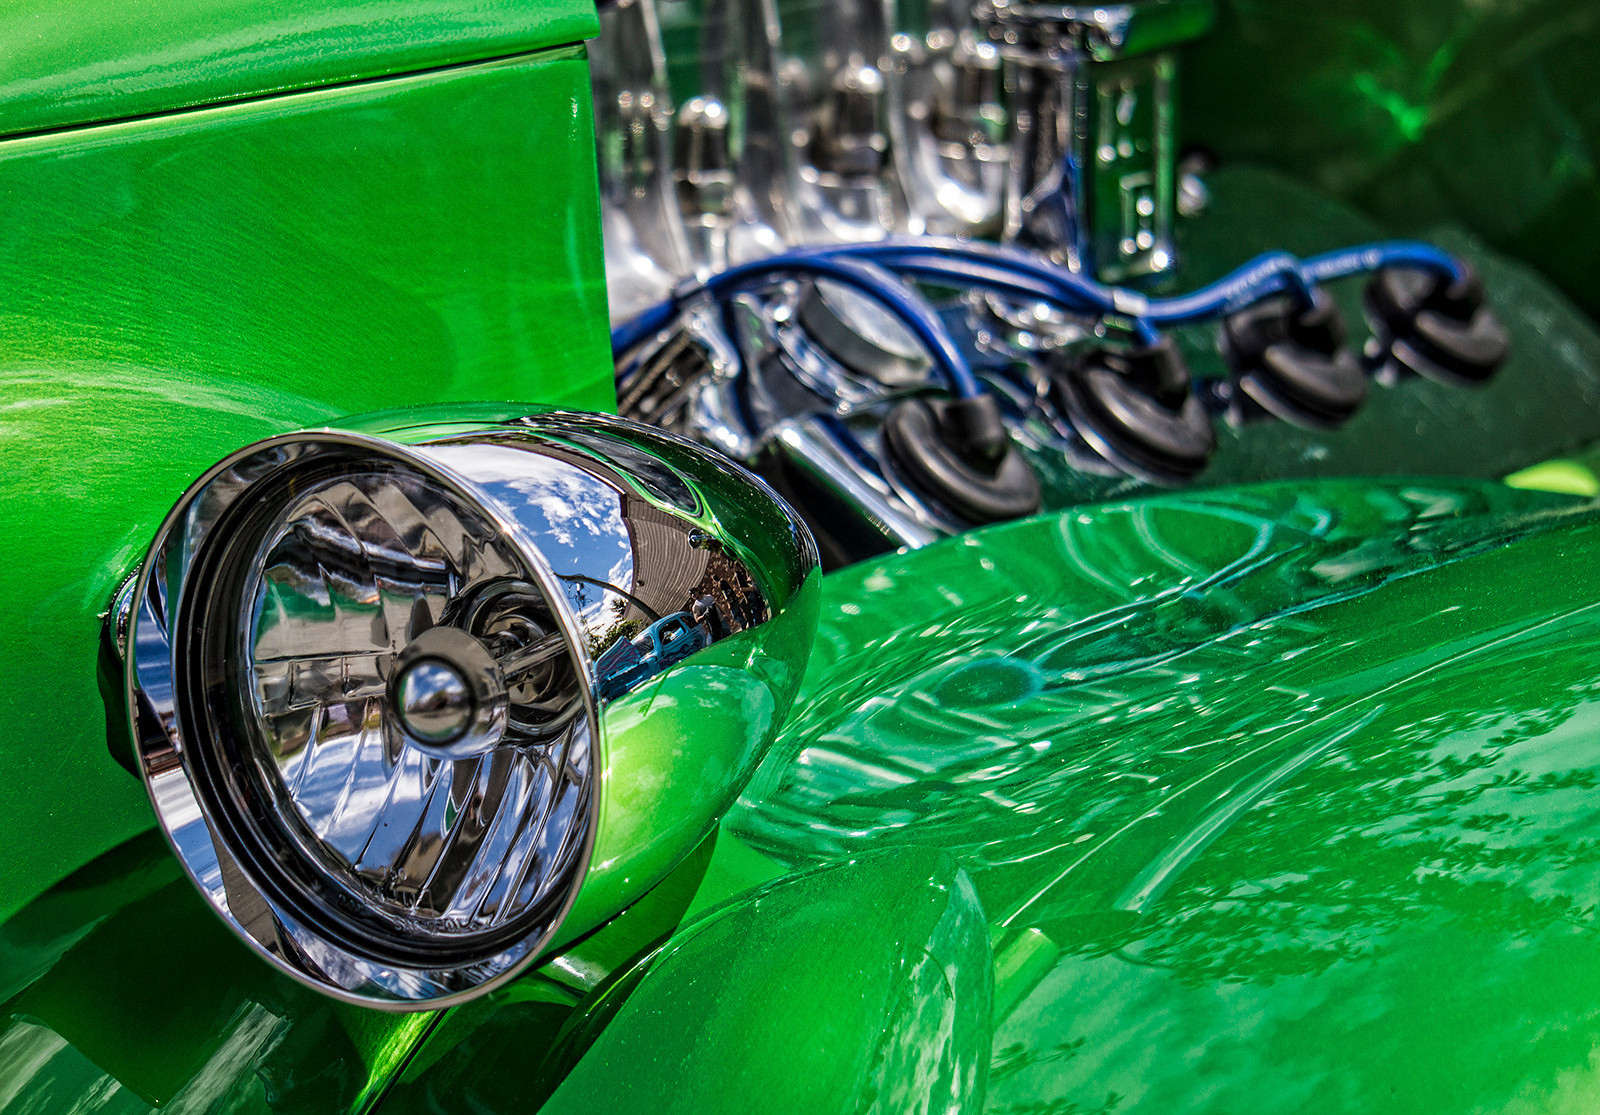 Fathers Day Car Show-6-X3.jpg